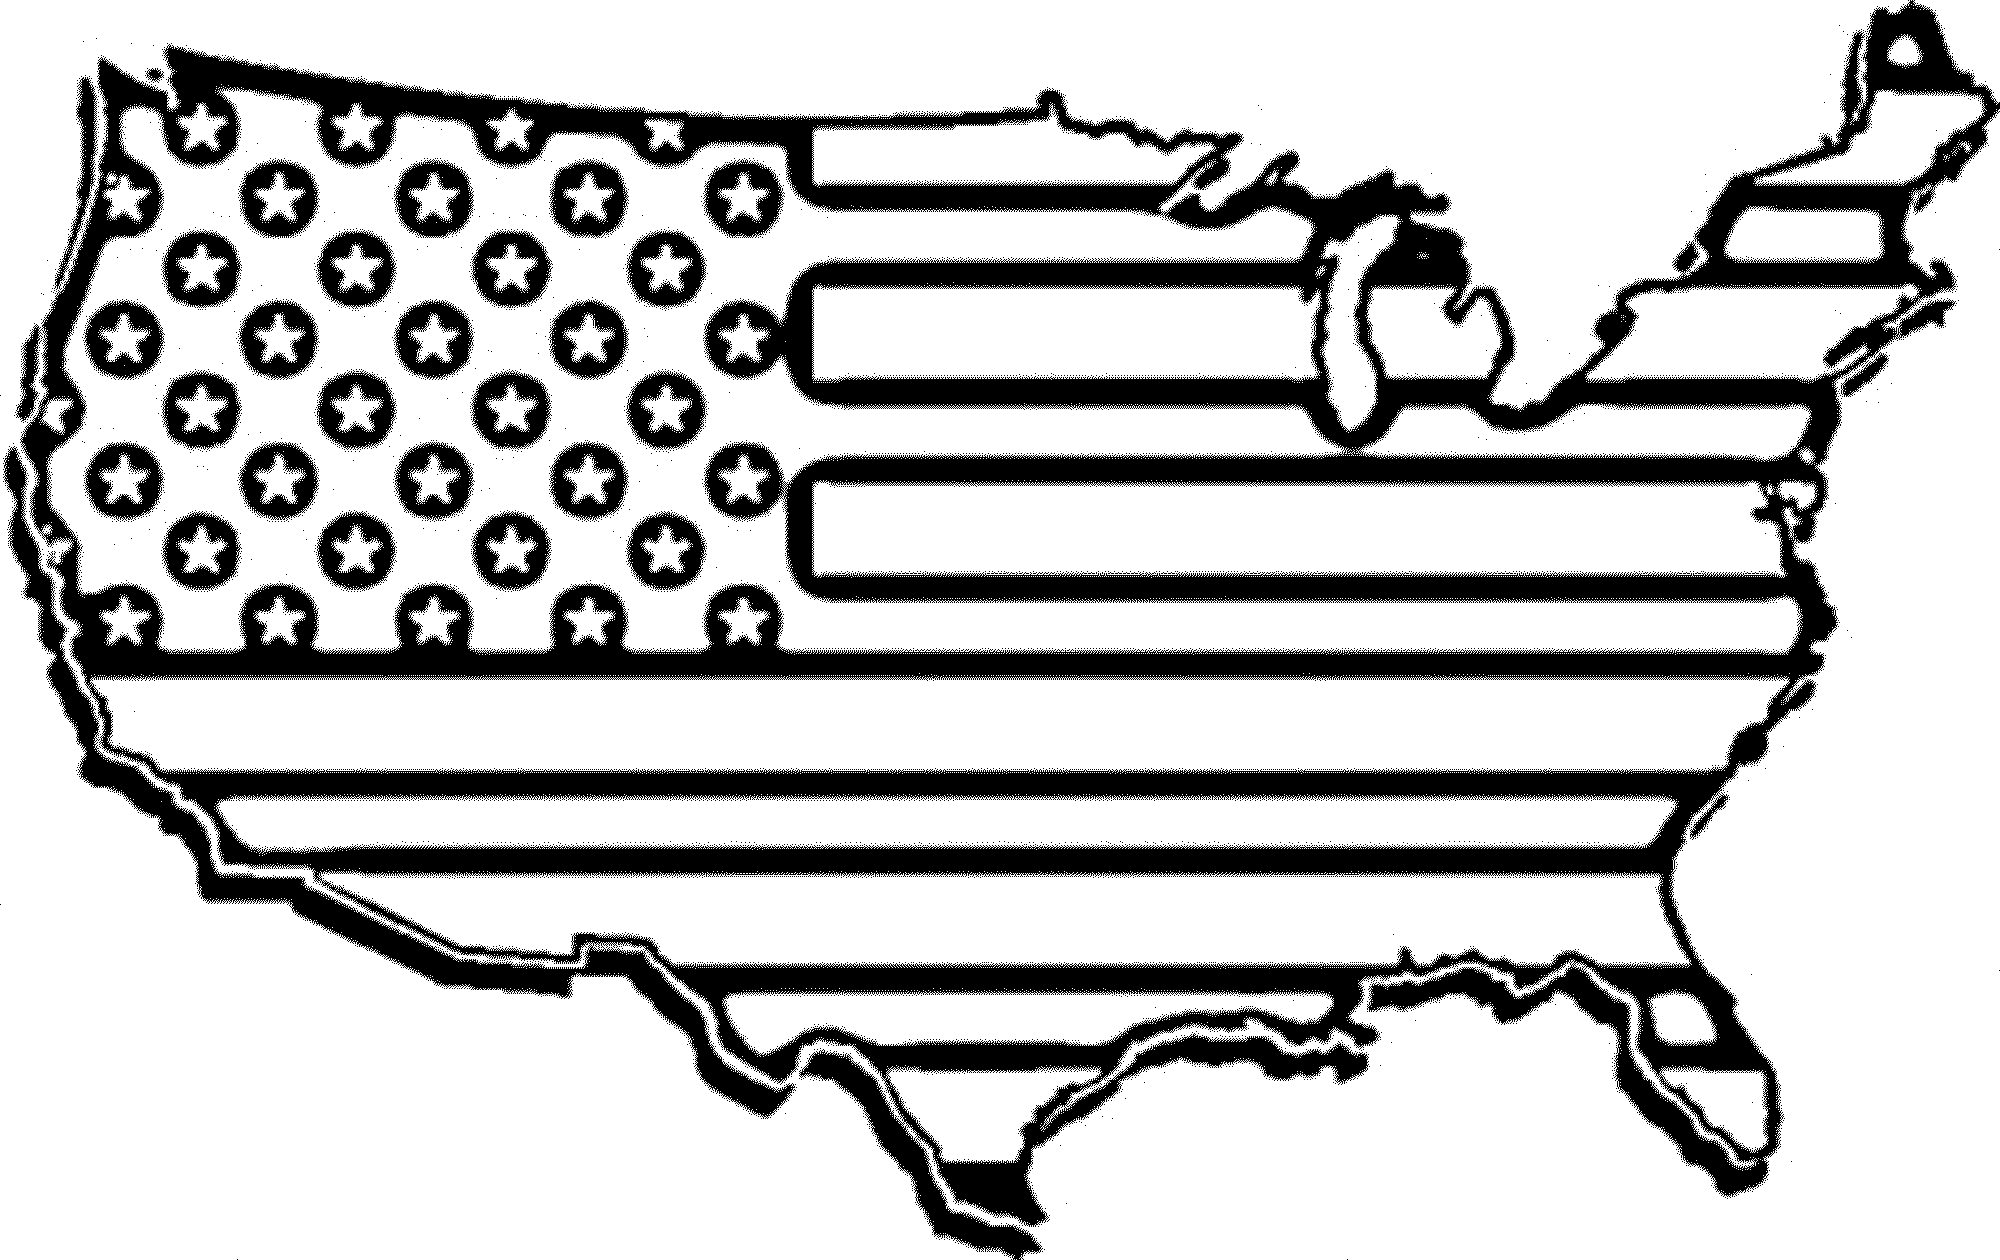 coloring page american flag american flag coloring page for the love of the country coloring flag american page